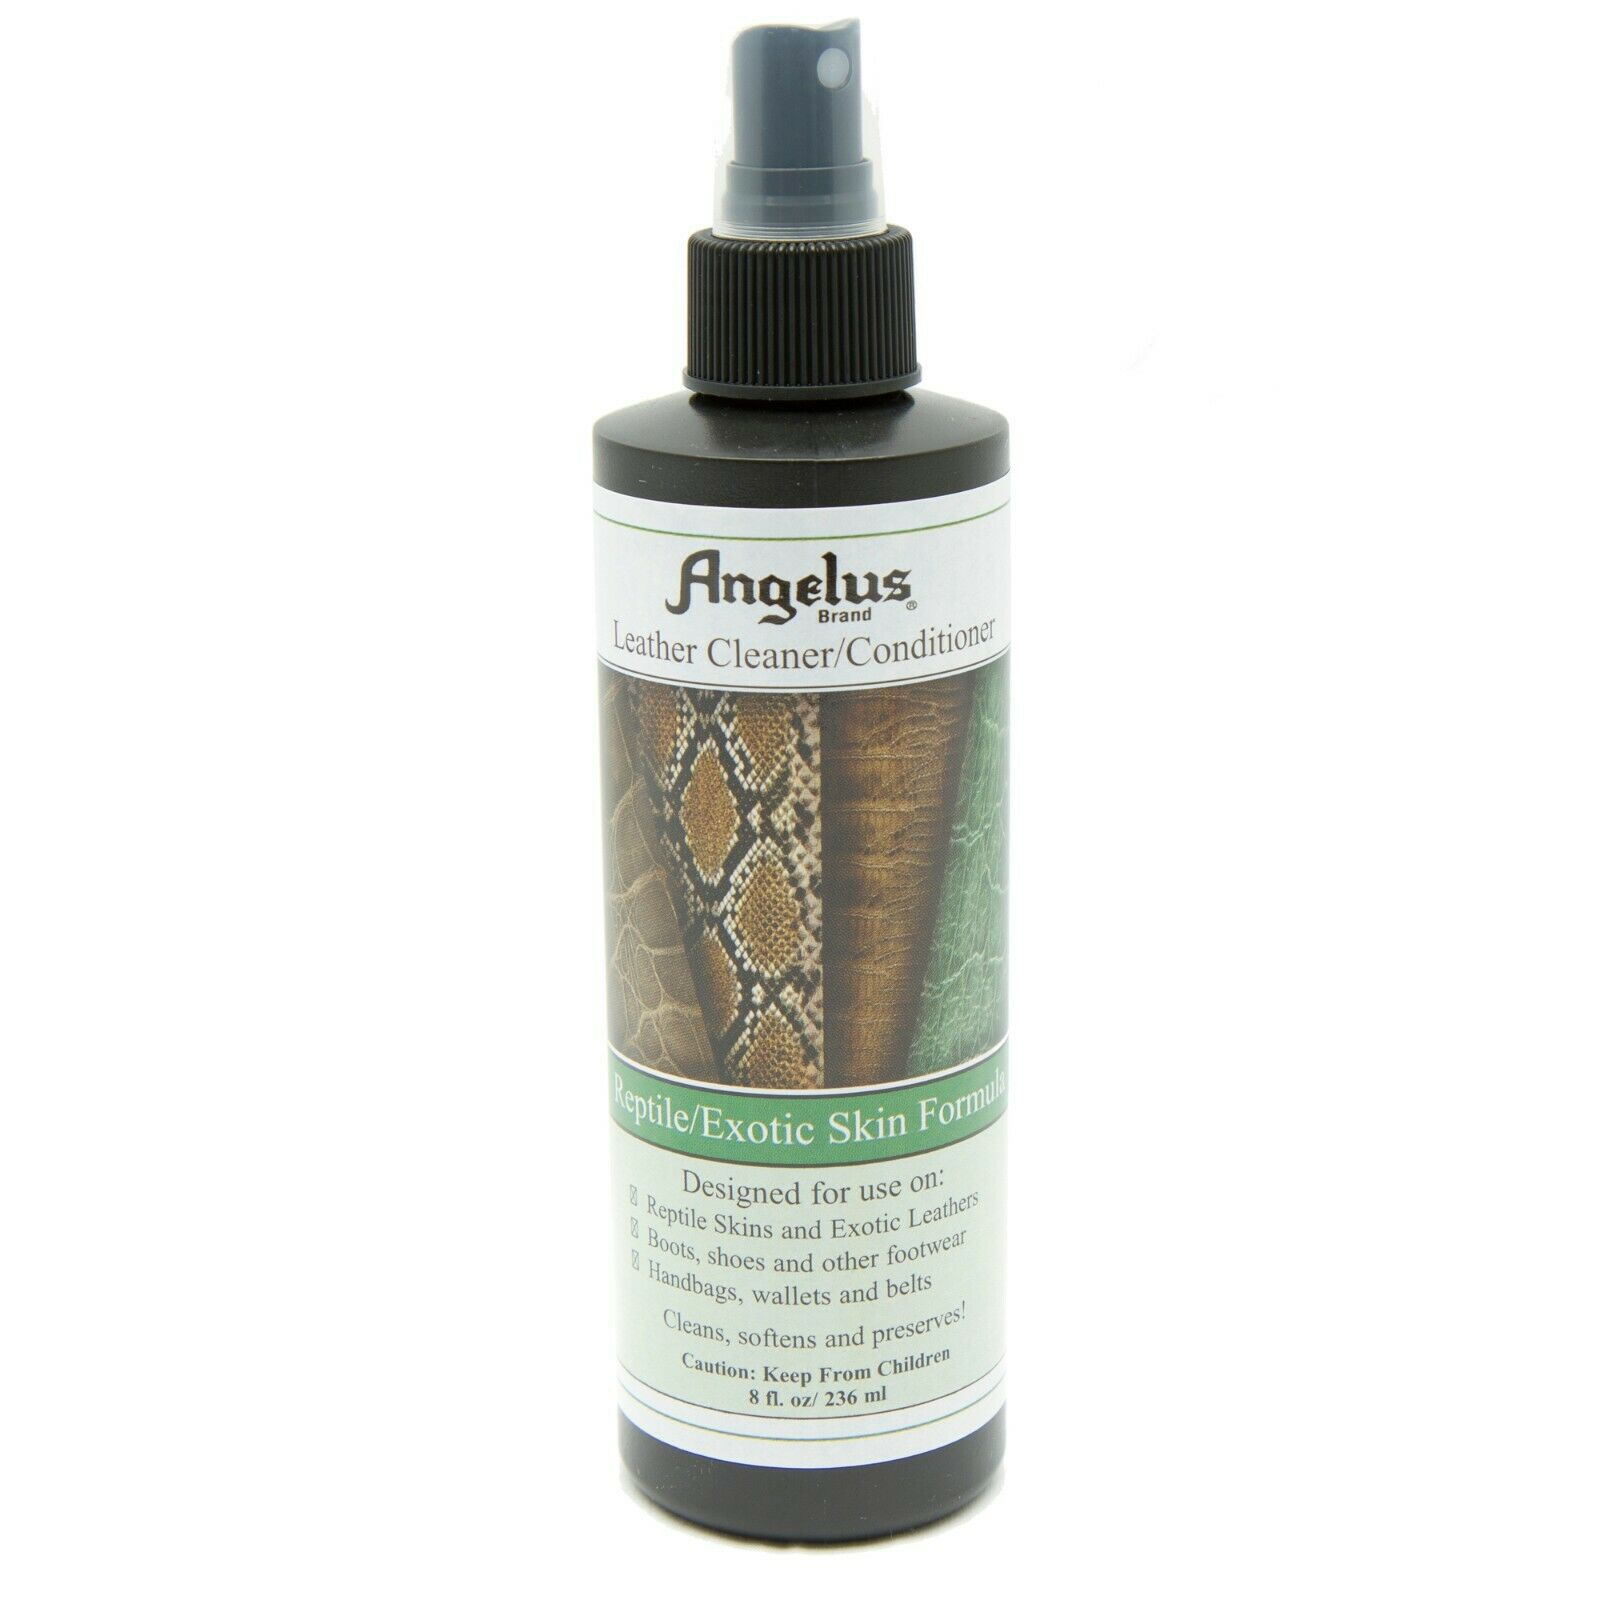 Angelus Reptile/Exotic Skin Leather Cleaner/Conditioner 8oz Pump Clothing & Shoe Care